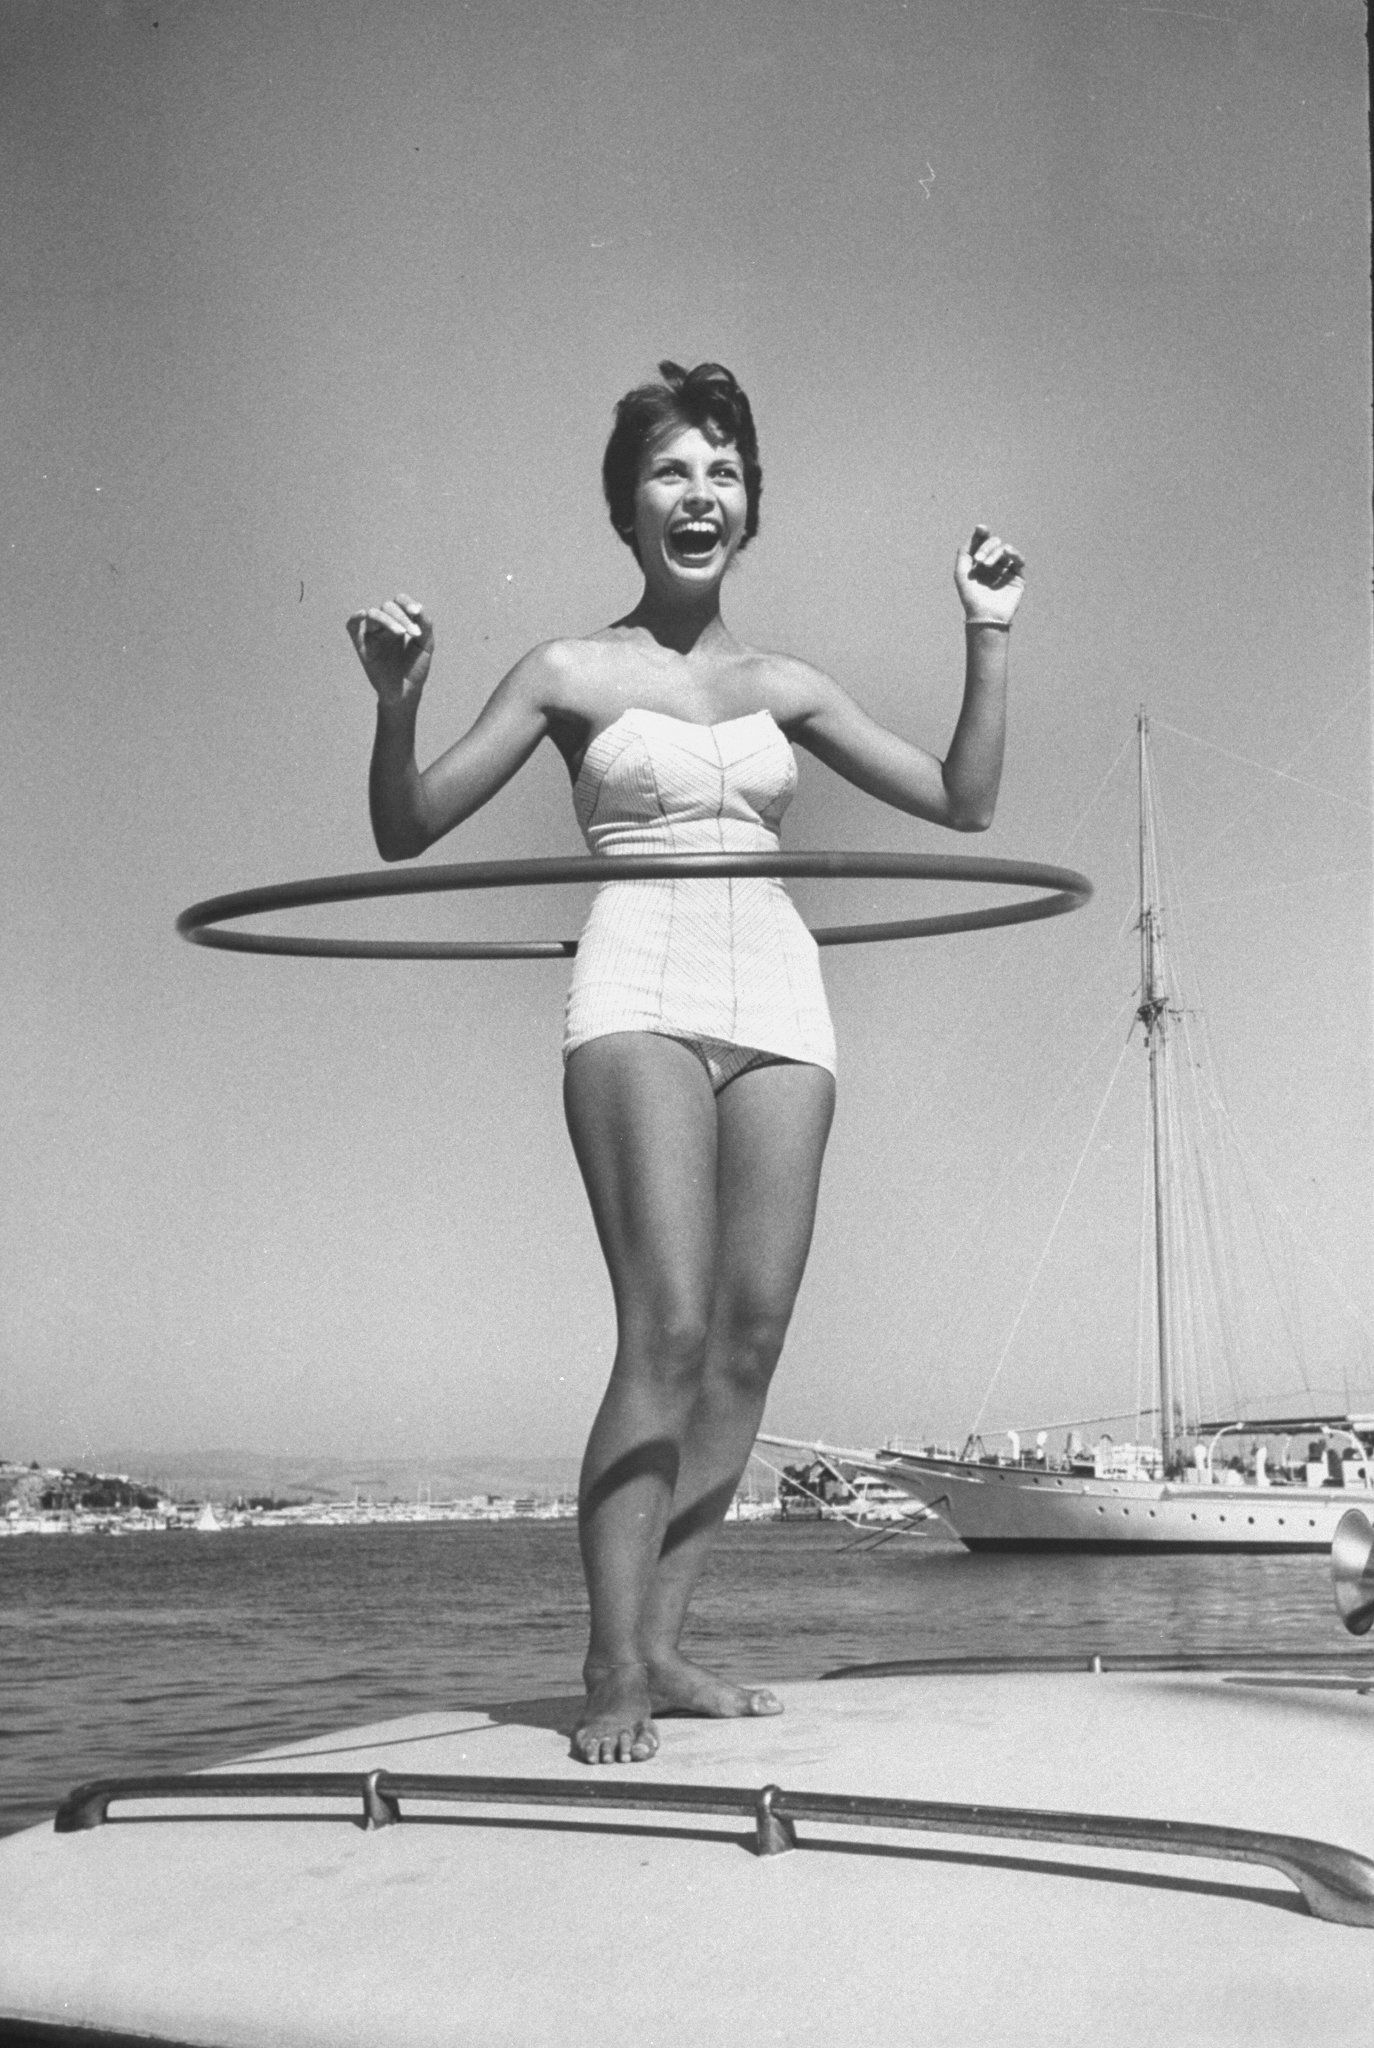 Bonnie Manchester demonstrates a hoop in Newport Beach, California, in 1958.